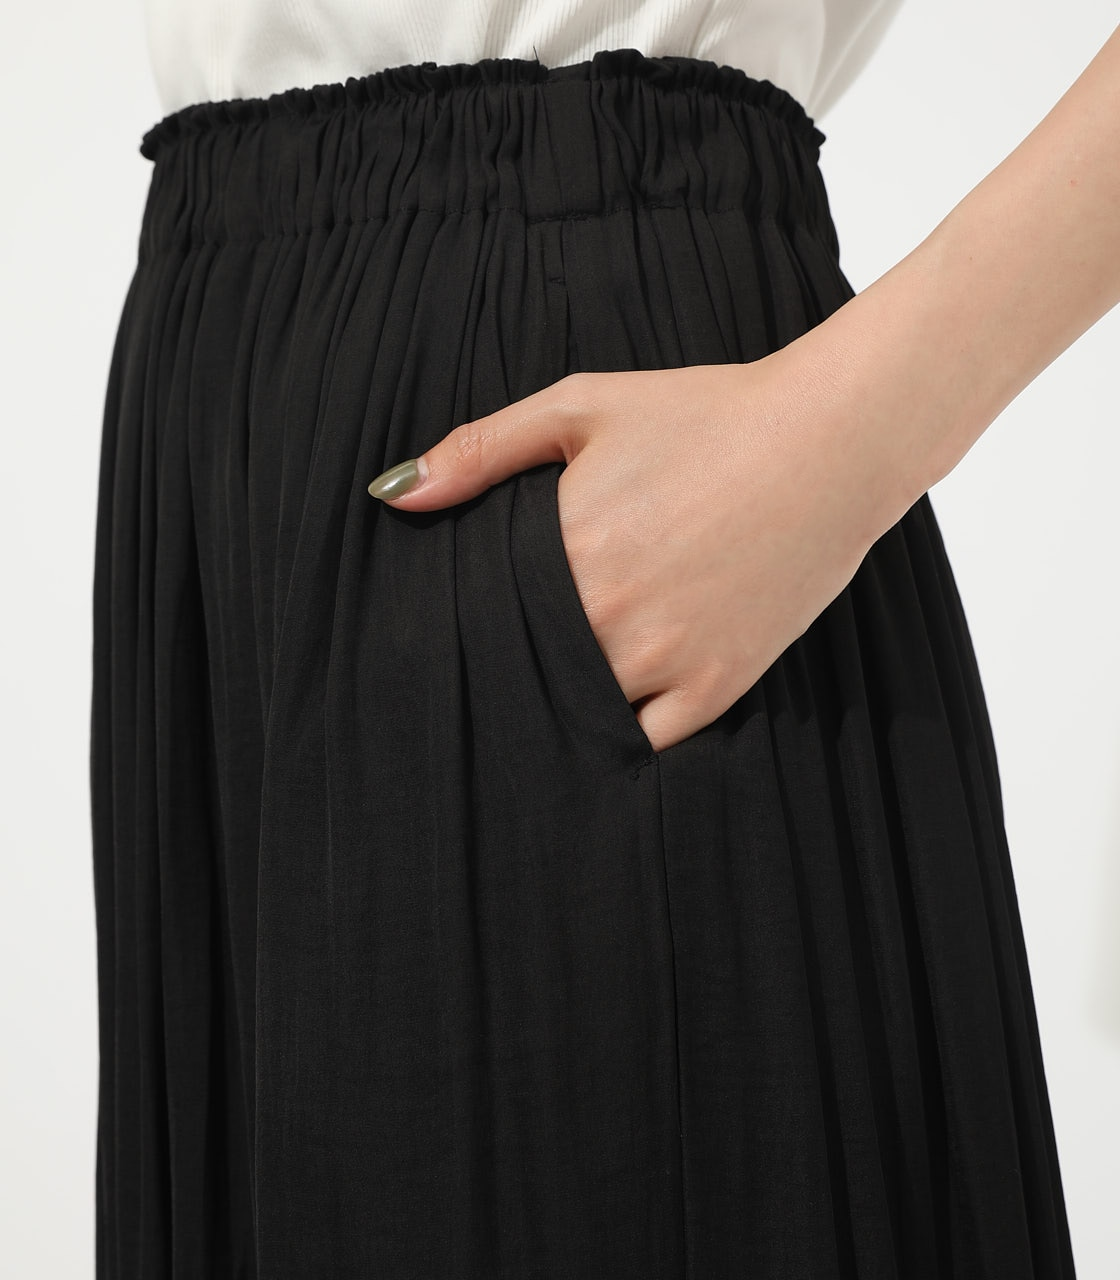 【AZUL BY MOUSSY】GATHER FLARE SKIRT 詳細画像 BLK 8